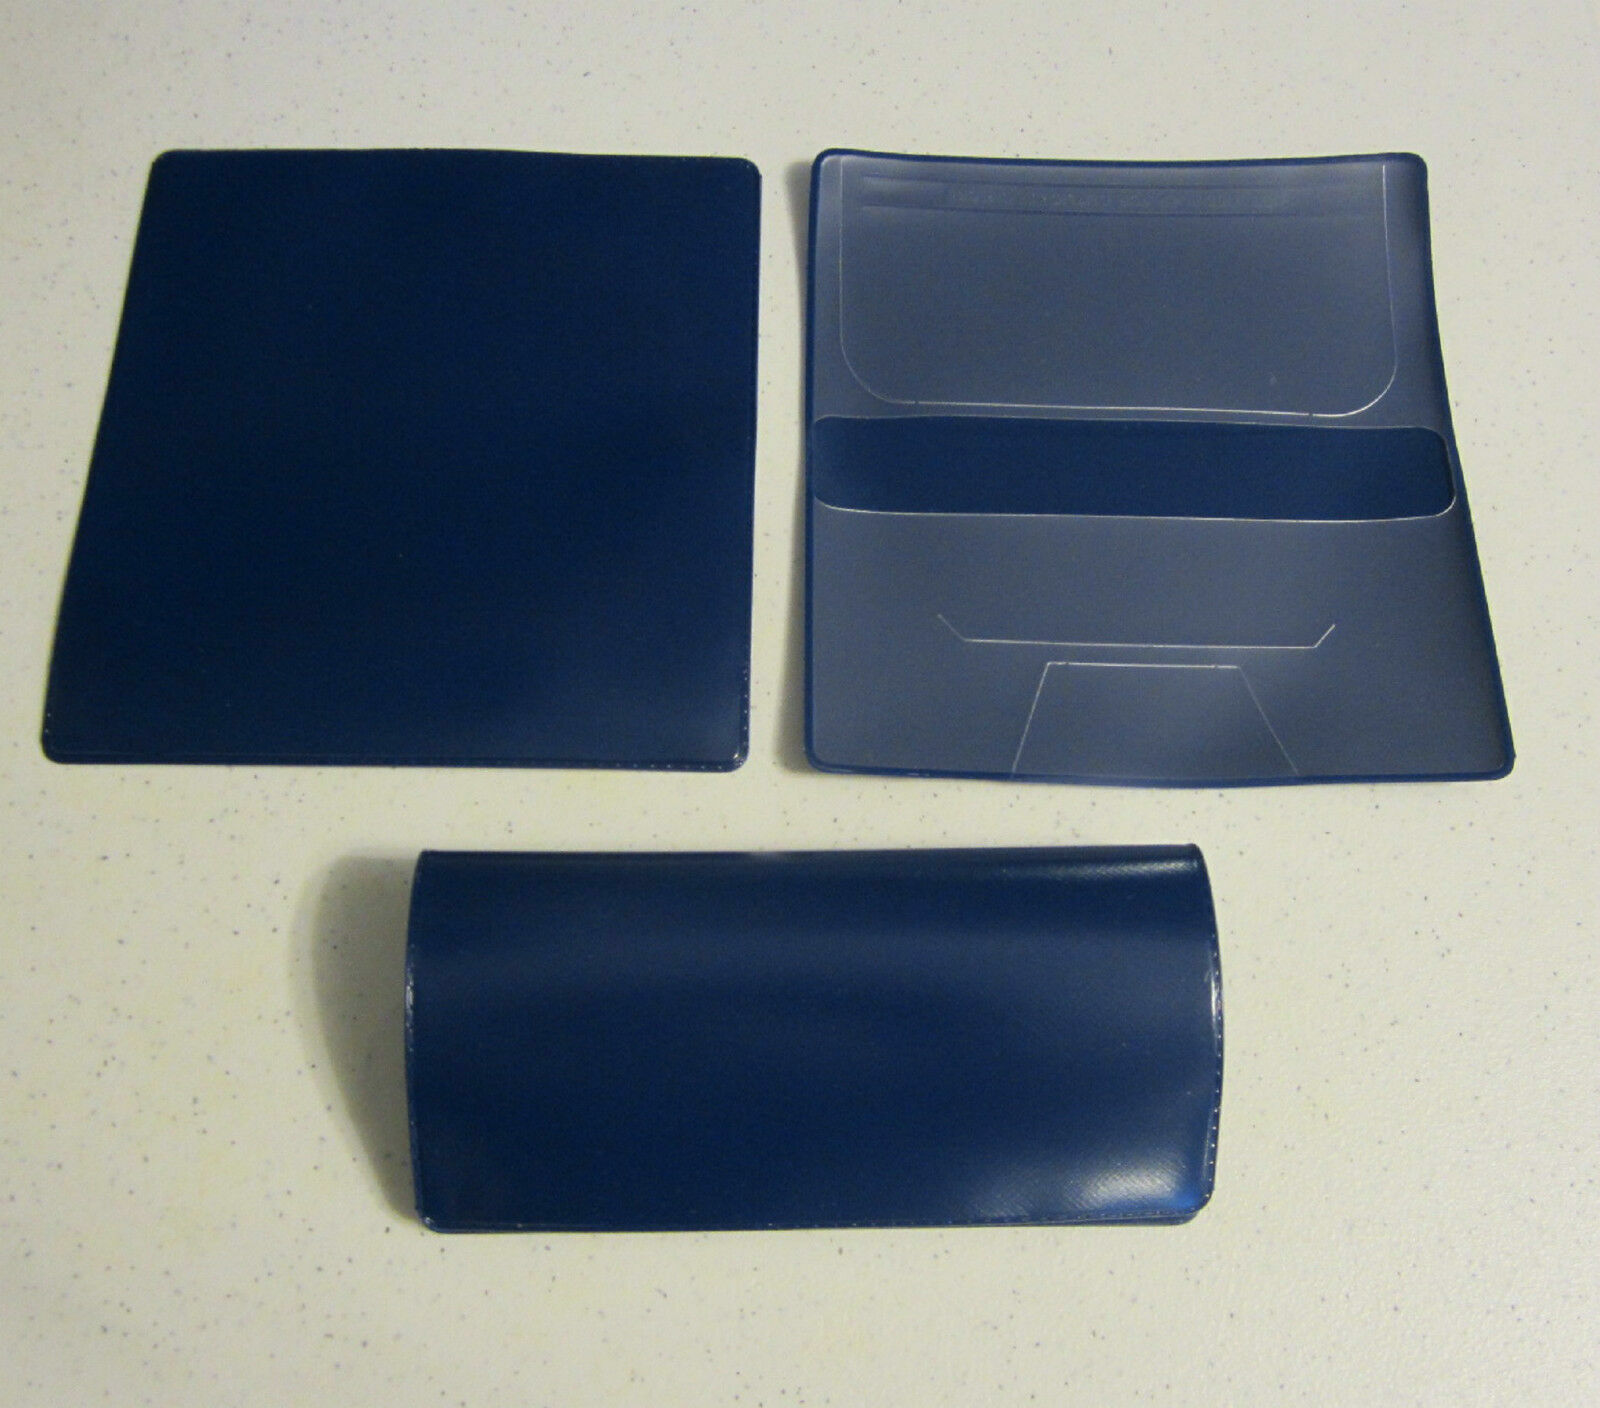 1 NEW Navy Blue VINYL CHECKBOOK COVER WITH DUPLICATE FLAP